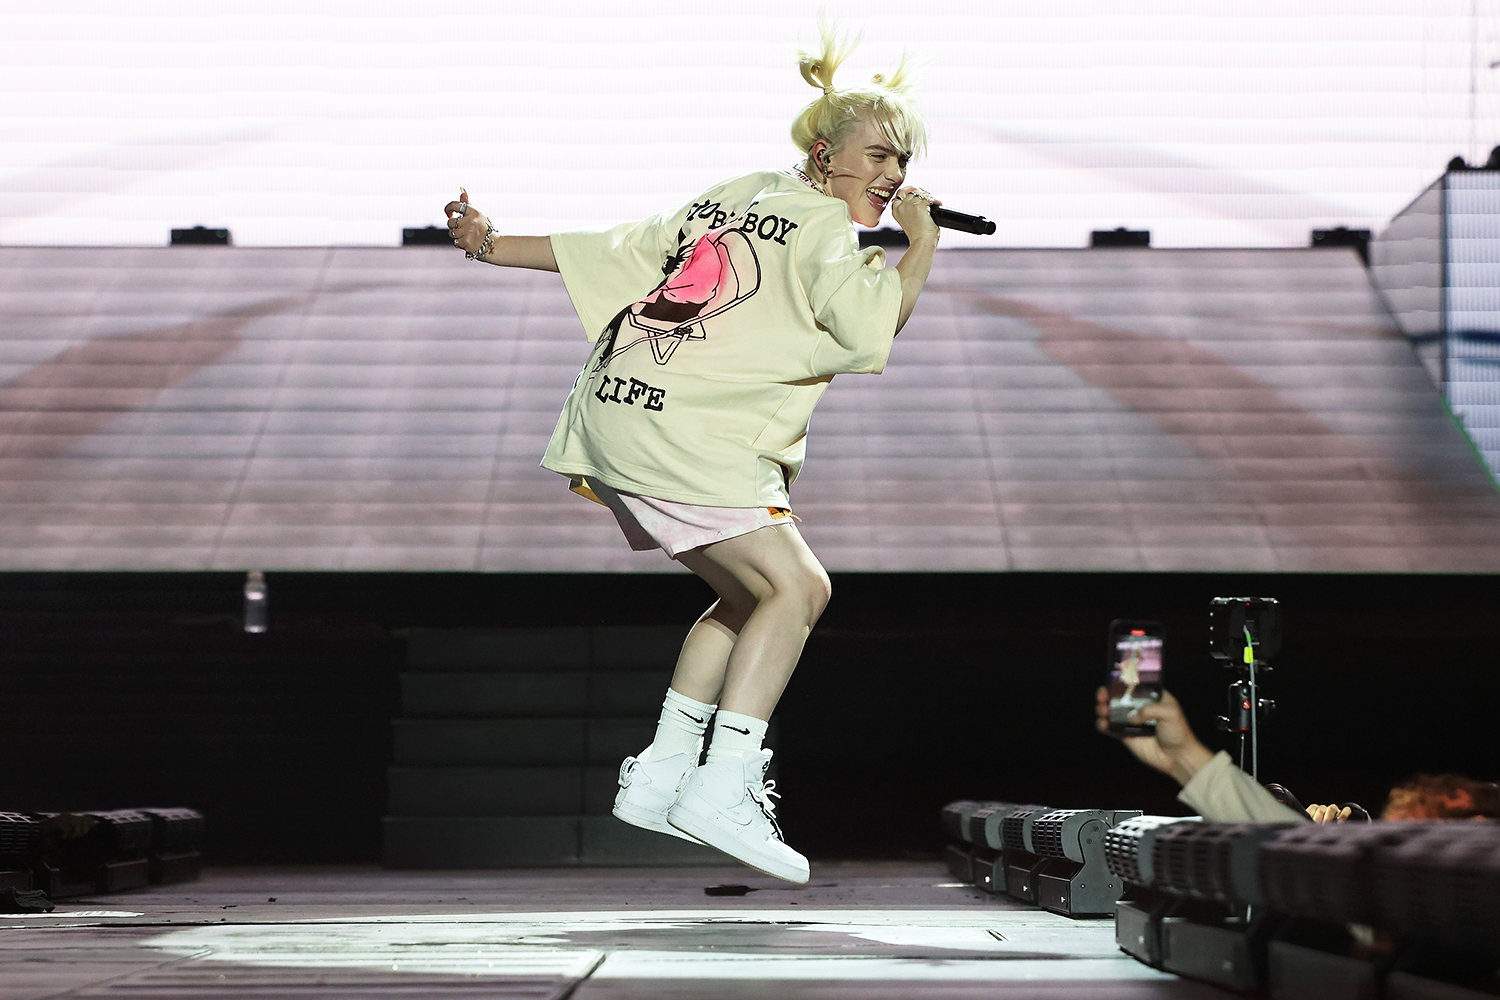 Billie Eilish performs during the 2021 Governors Ball Music Festival at Citi Field on September 24, 2021 in New York City.